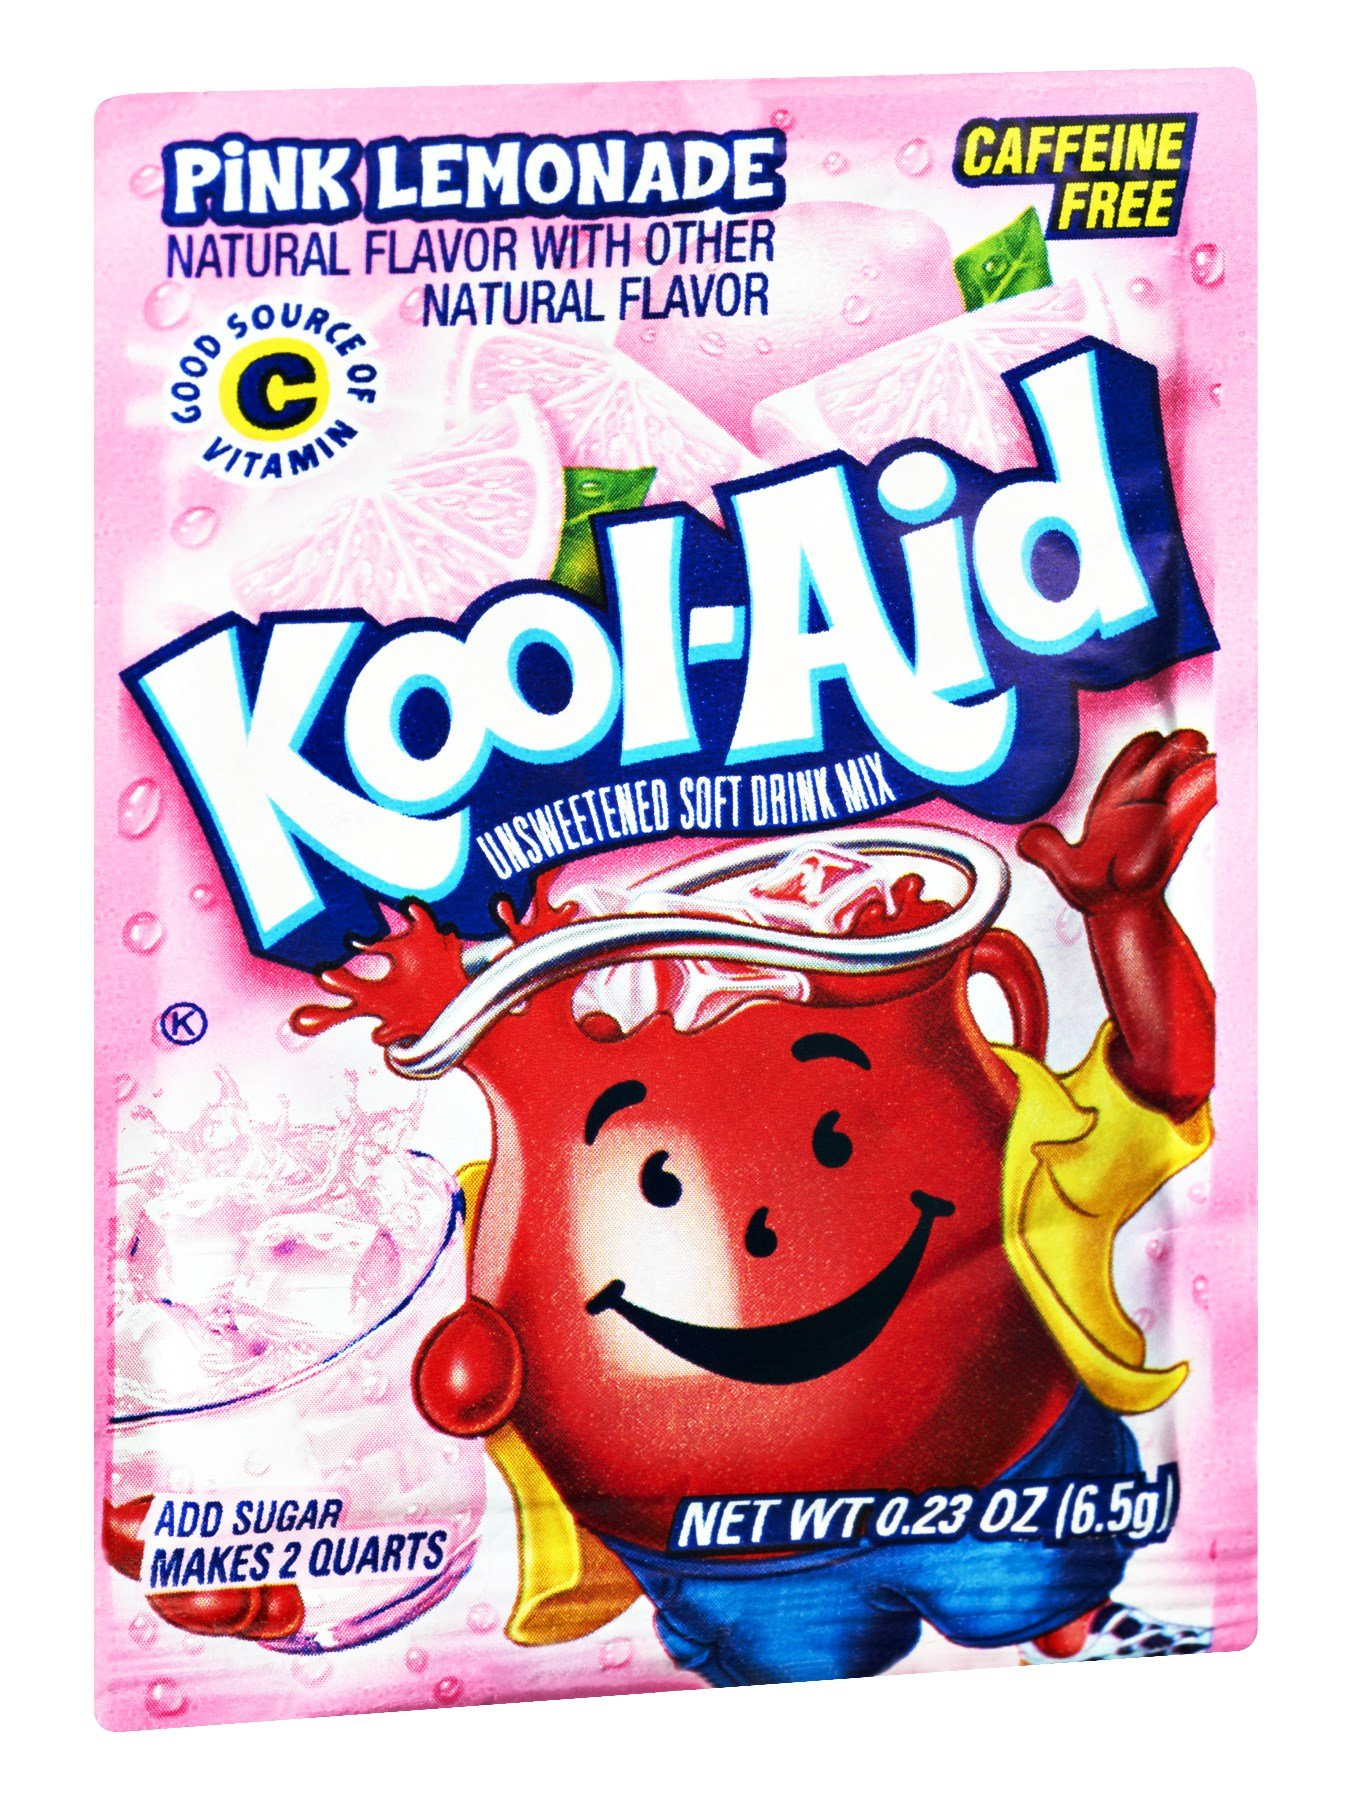 Kool-Aid Pink Lemonade Caffeine Free Unsweetened Soft Drink Mix, 0.23 OZ (Pack of 192) by Kool-Aid